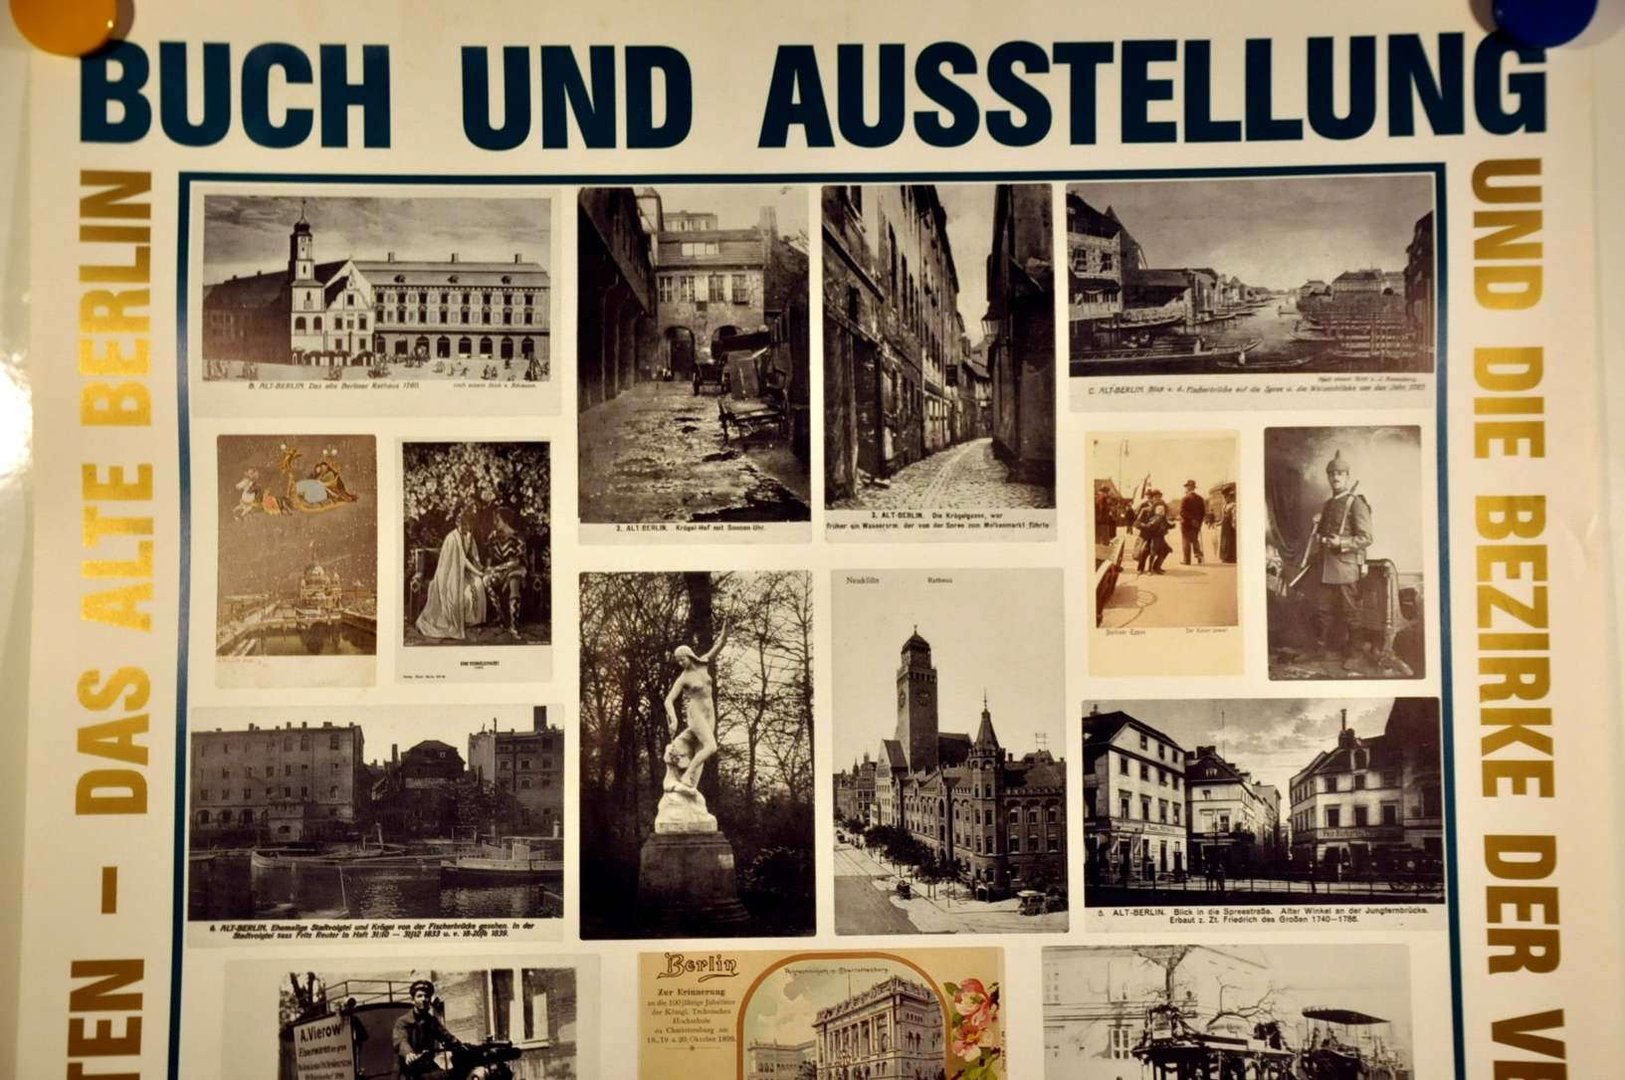 Poster Shop Berlin Book And Exhibition Poster 750 Years Berlin For Sale At Kusera